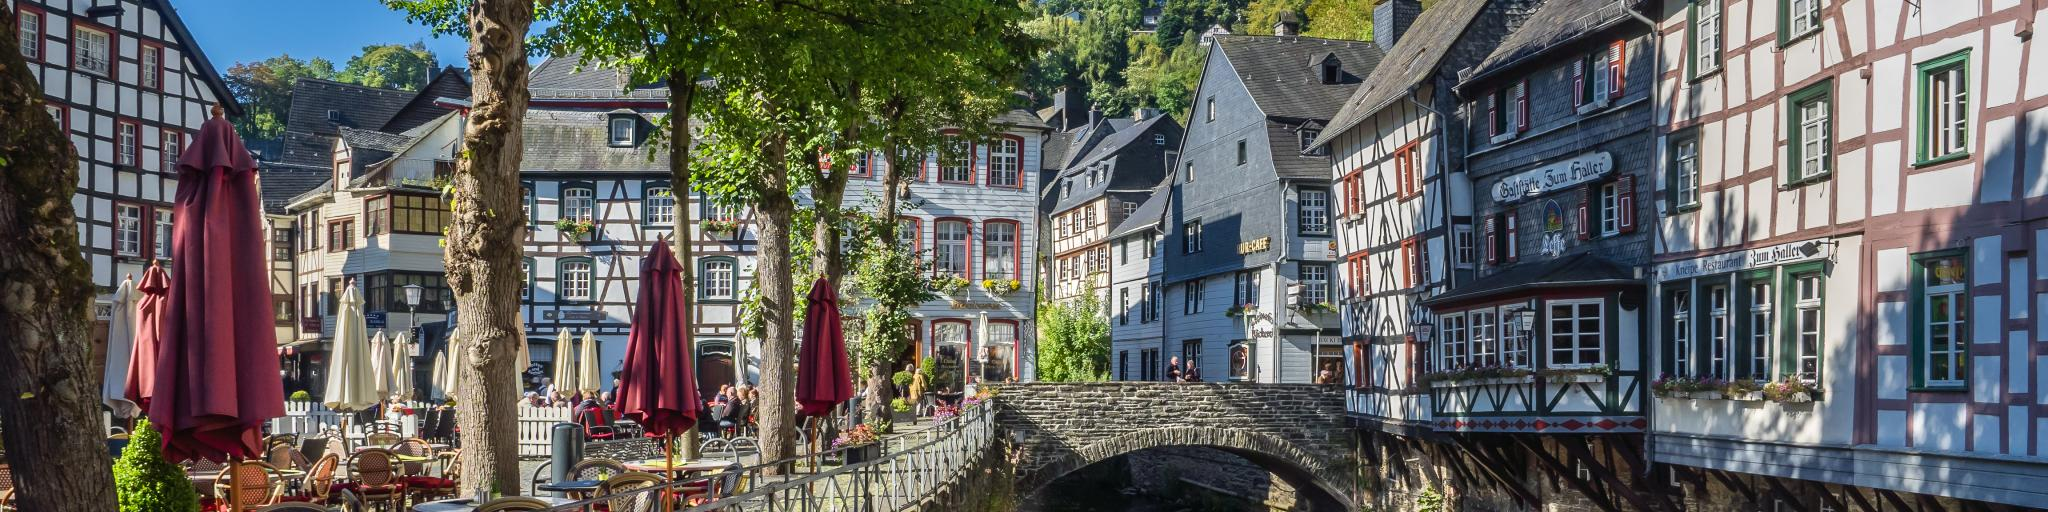 River in Monschau, Germany